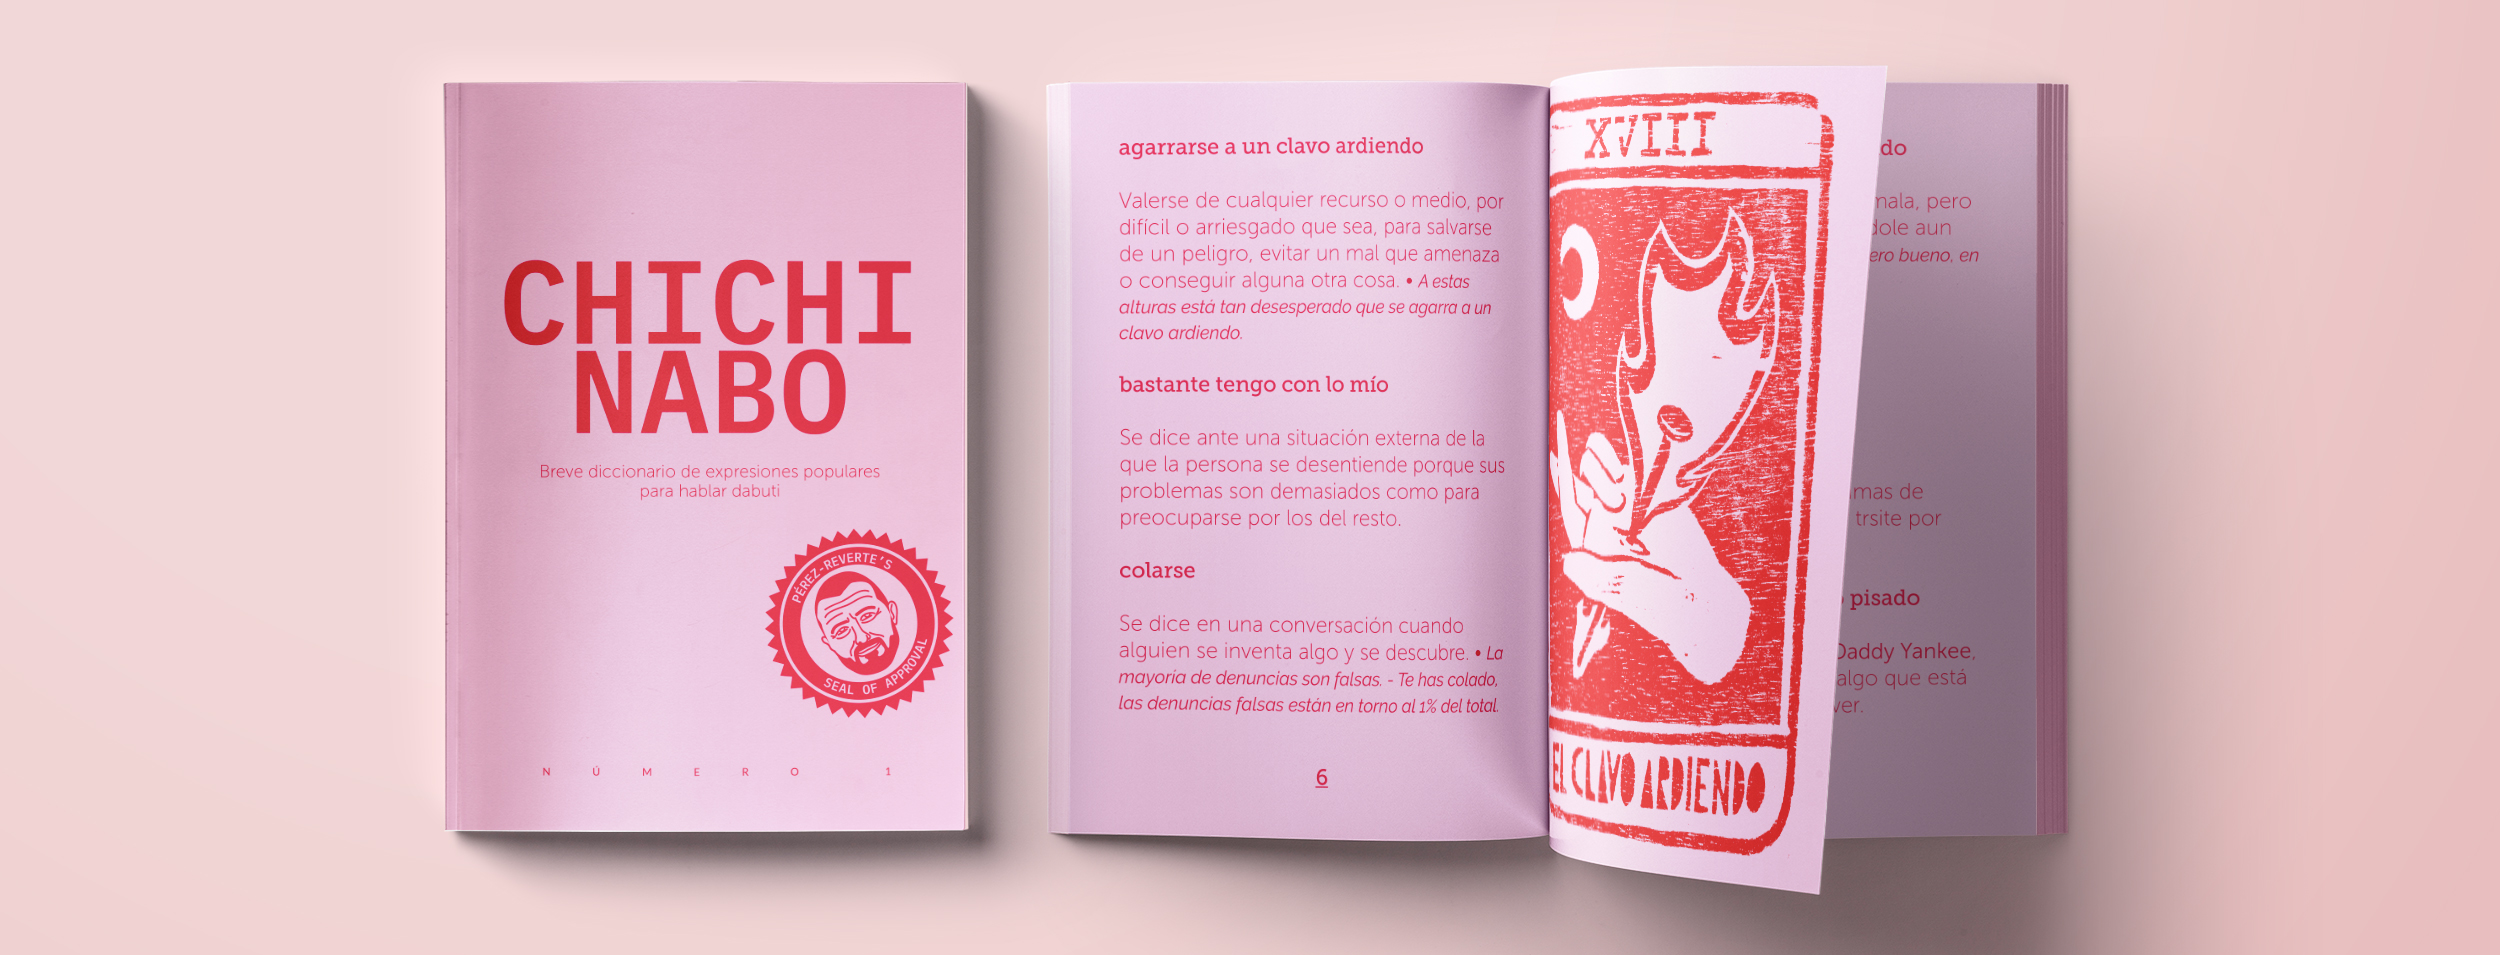 """The image shows two equal zines over a pink background. The zine on the left is closed and we see the cover of CHICHINABO: small dictionary of Spanish popular expressions and idioms to speak as a native"""", and a stamp with the face of Arturo Pérez-Reverte and the text """"Pérez-Reverte's Seal of Approval"""". On the right, the same zine but open."""